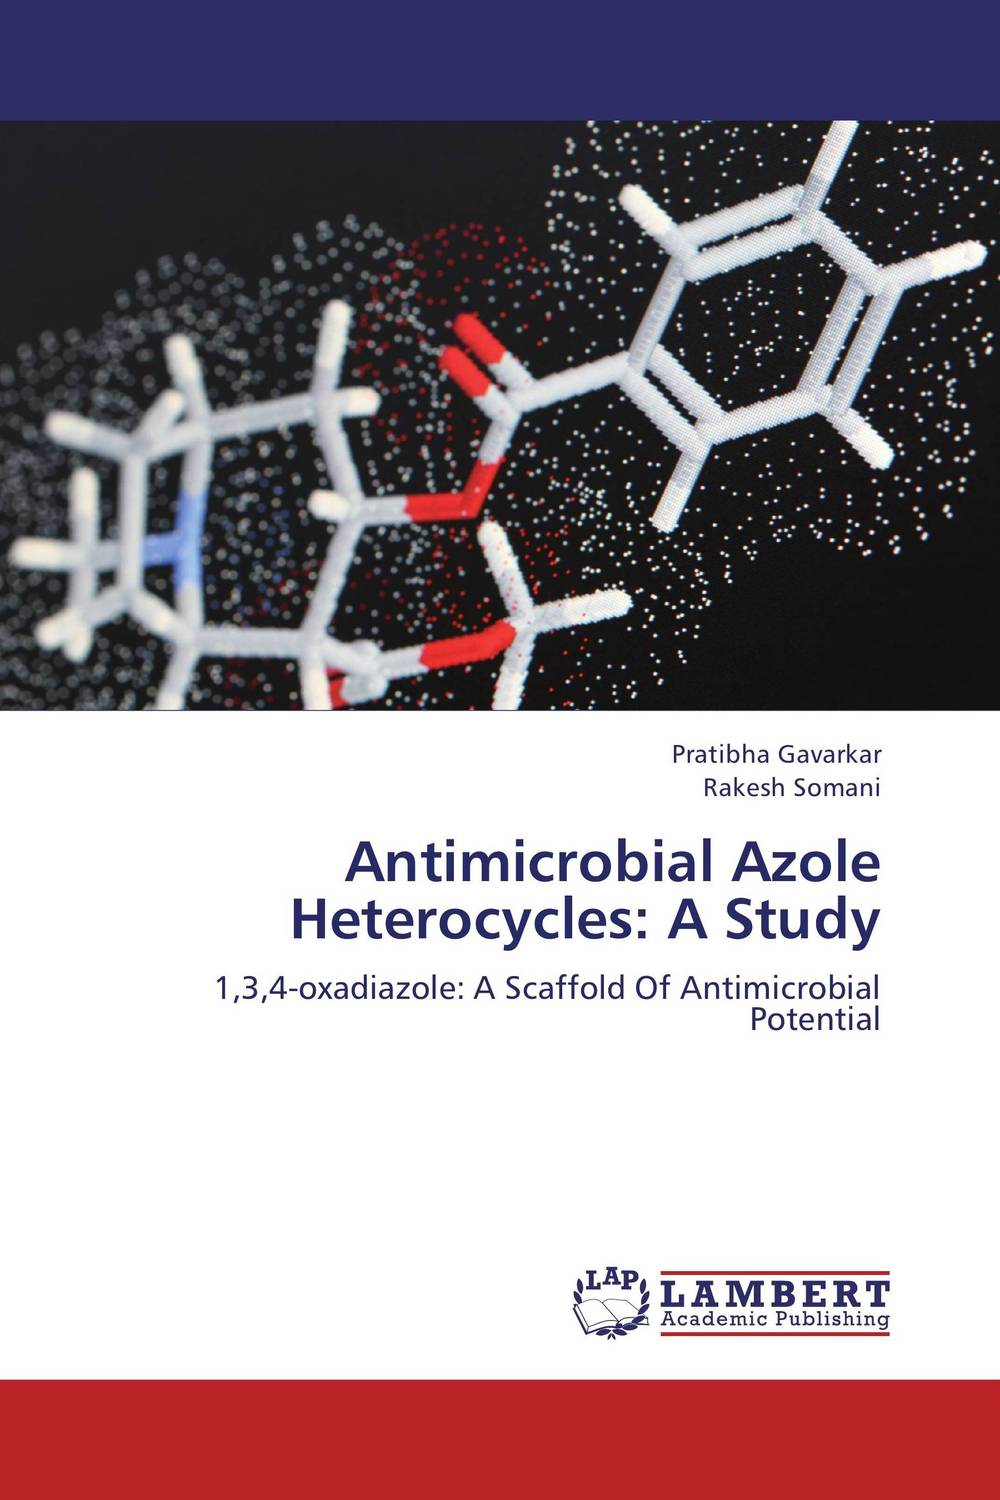 Antimicrobial Azole Heterocycles: A Study anticancer evaluation of thiazole based heterocycles – a review